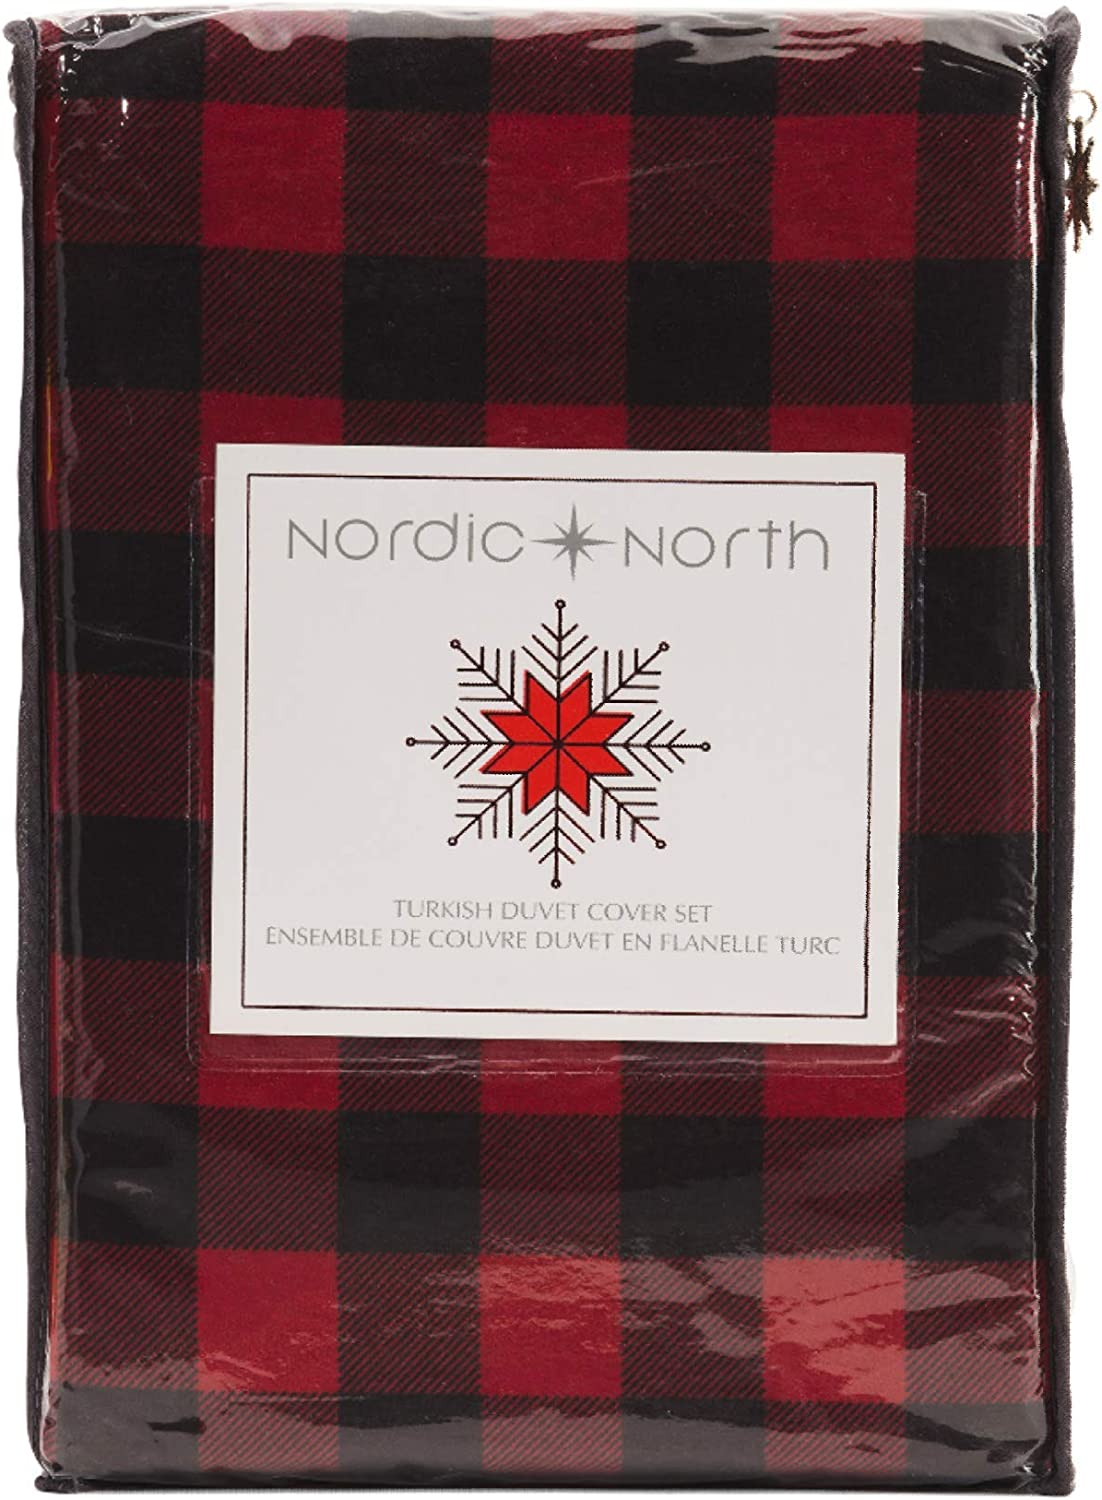 Nordic North Buffalo Plaid King Duvet Cover Set 3 Pc Flannel Turkish Cotton Lodge Cabin Black Red Checkered Bedding(King)